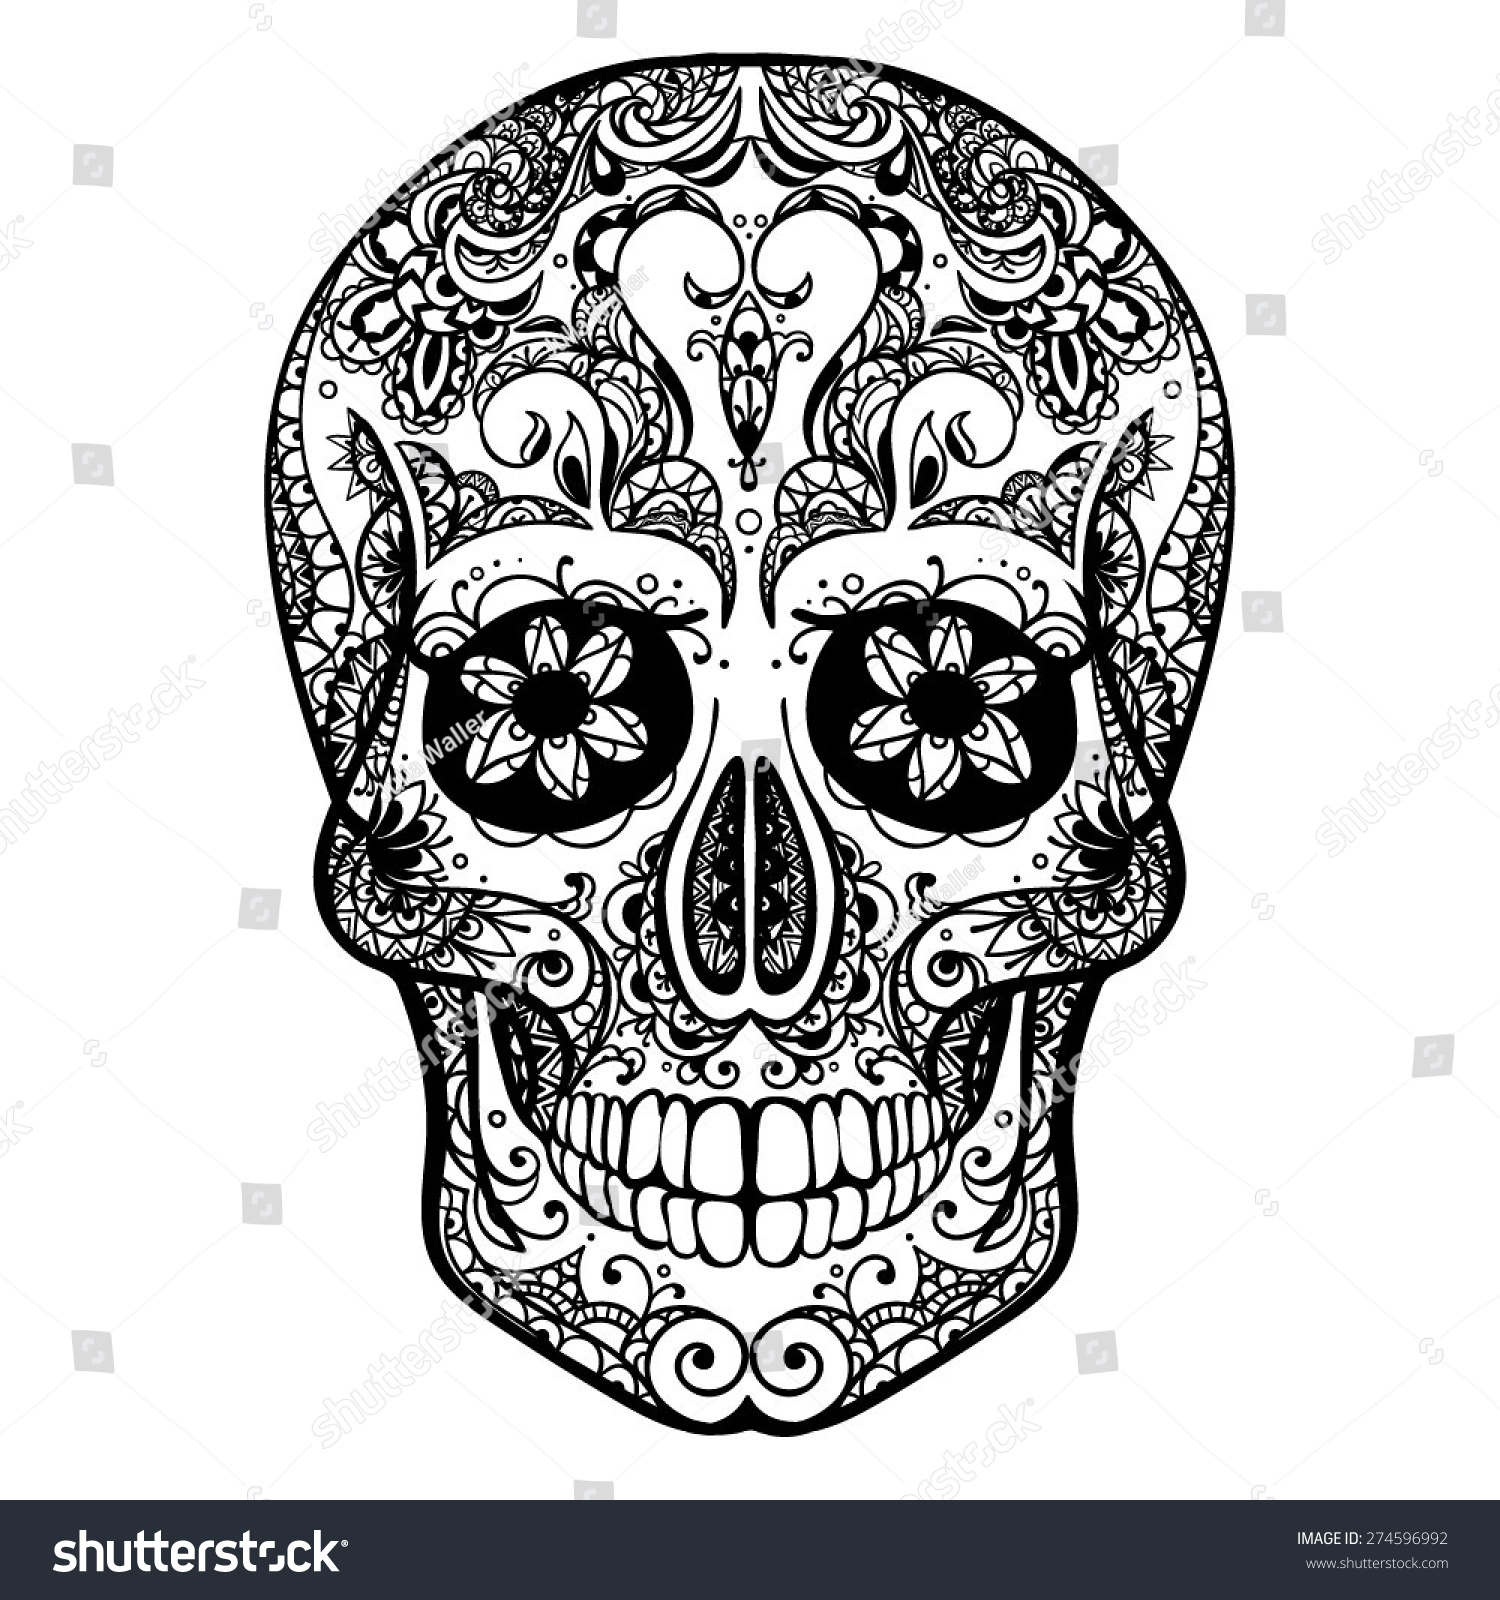 Vector Black White Tattoo Skull Illustration Stock